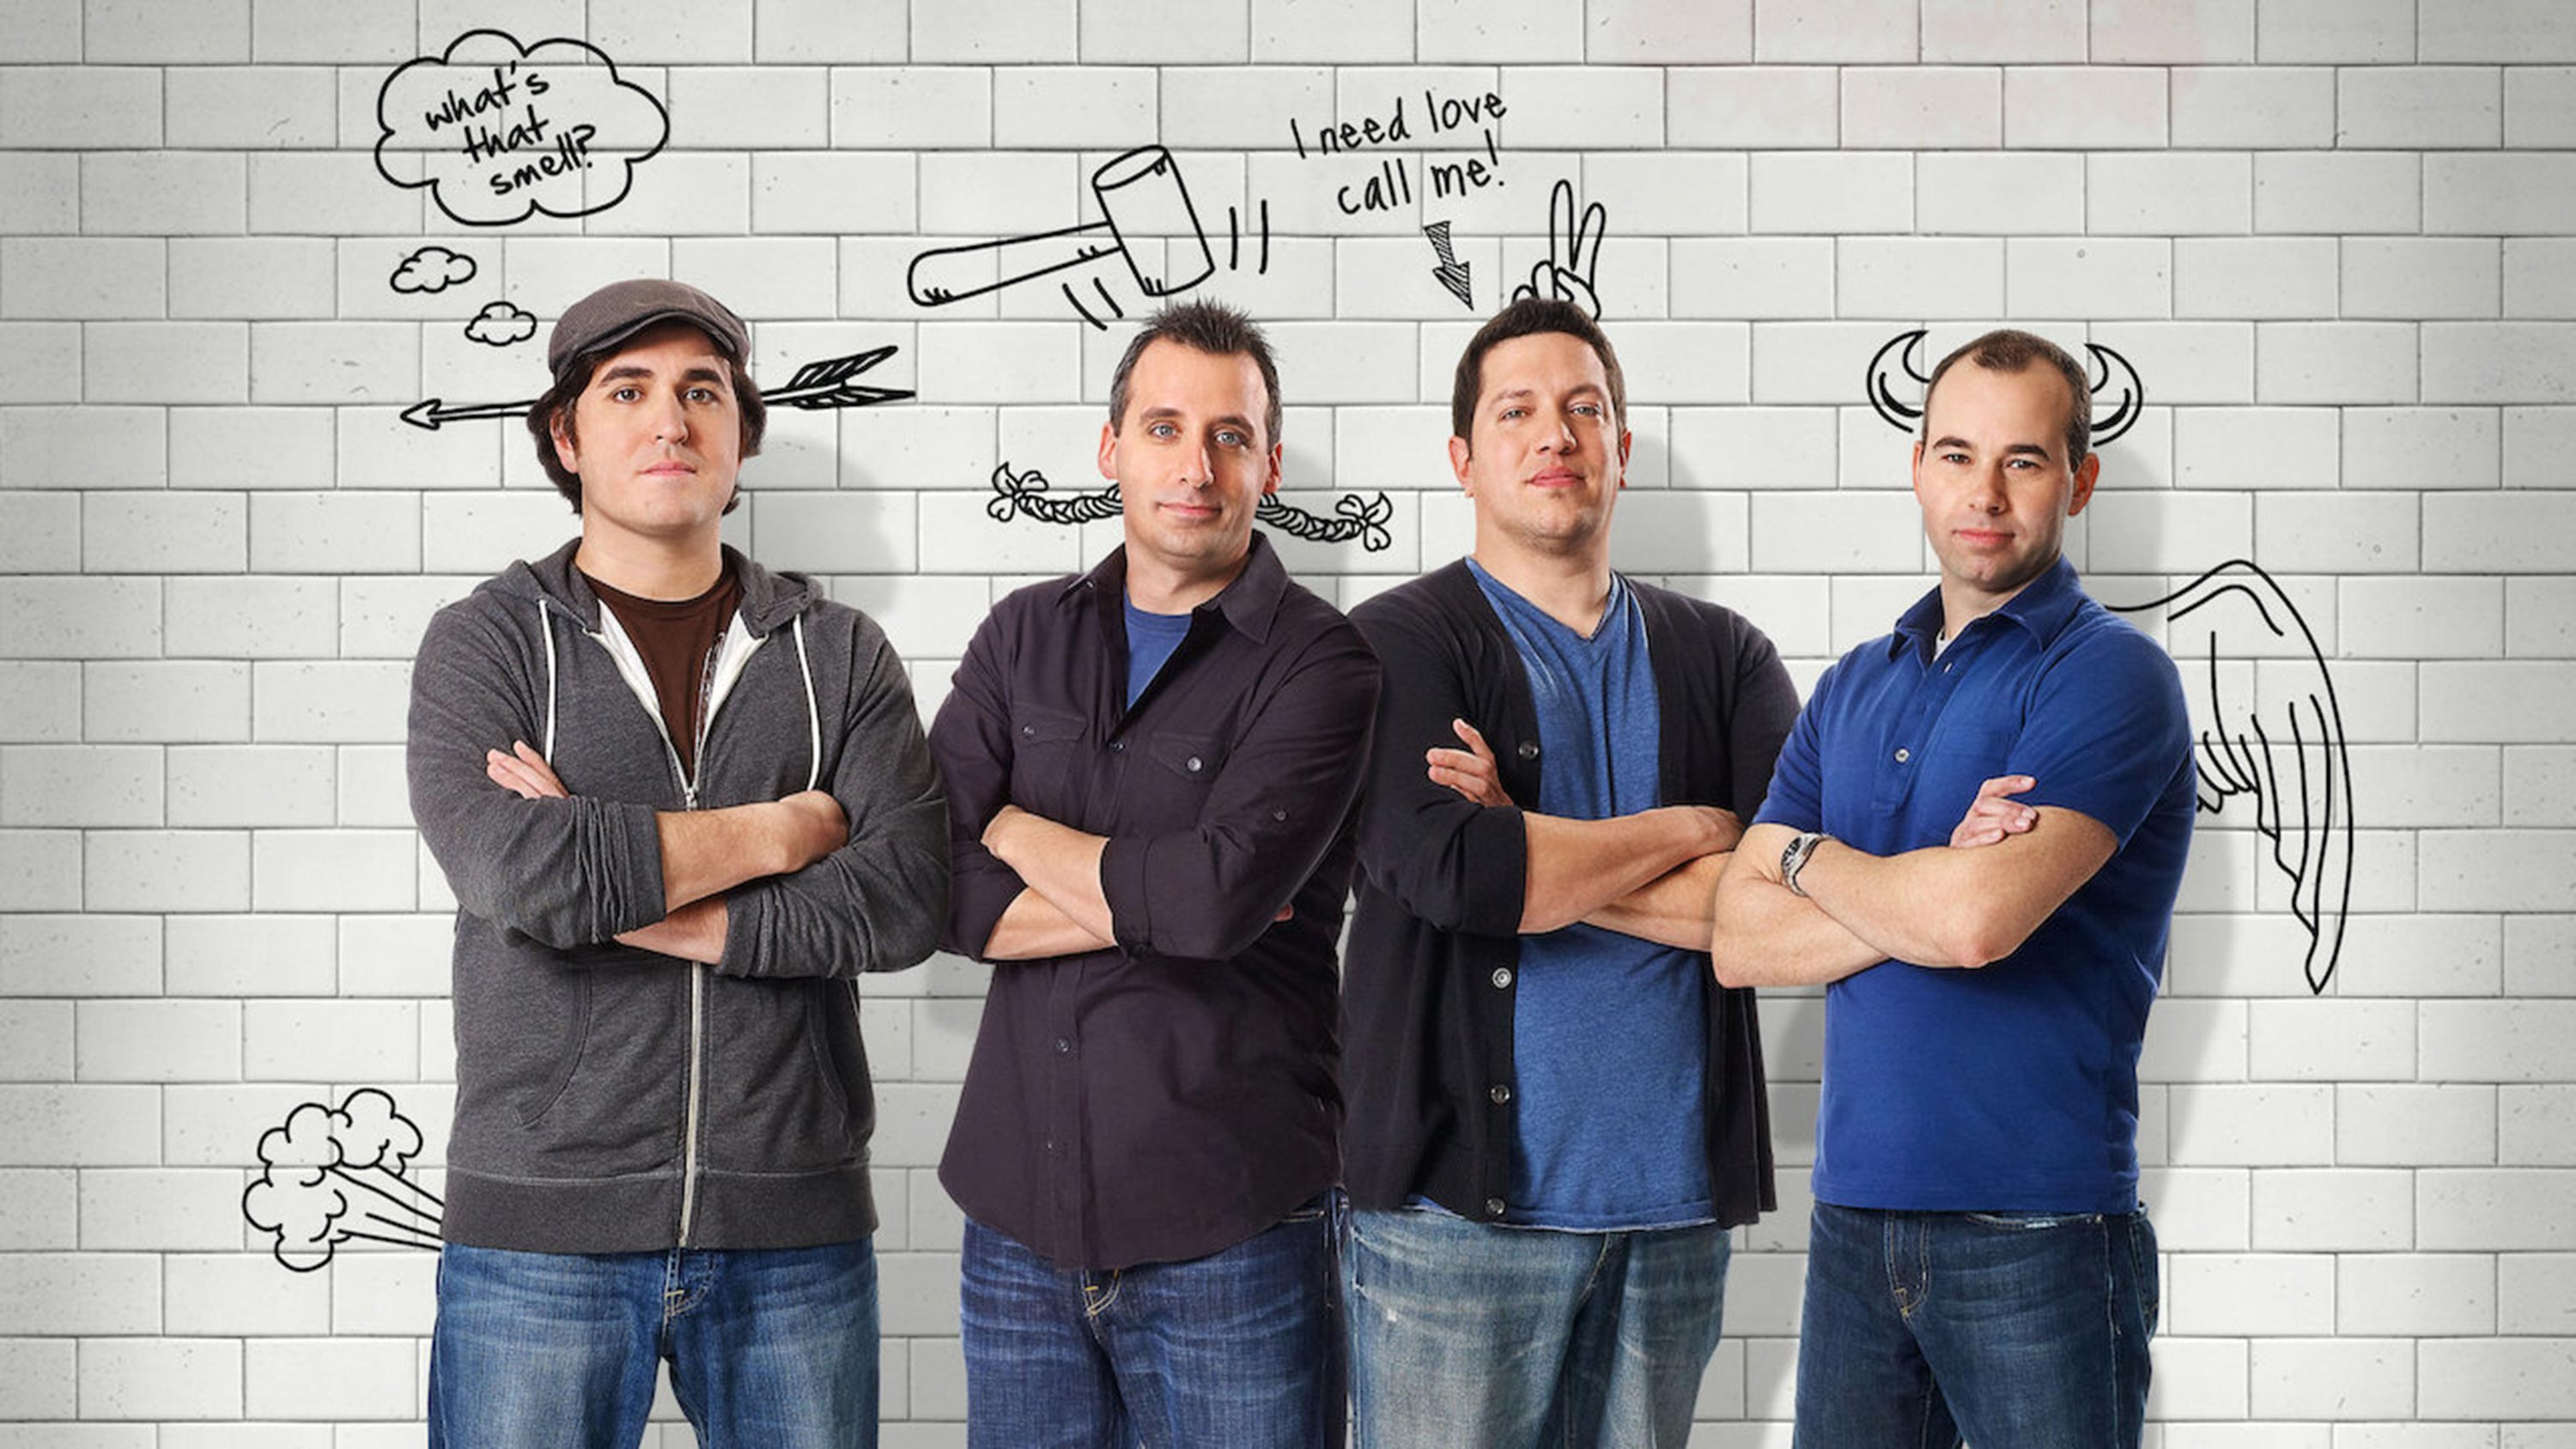 The most hilarious moments from Impractical Jokers.